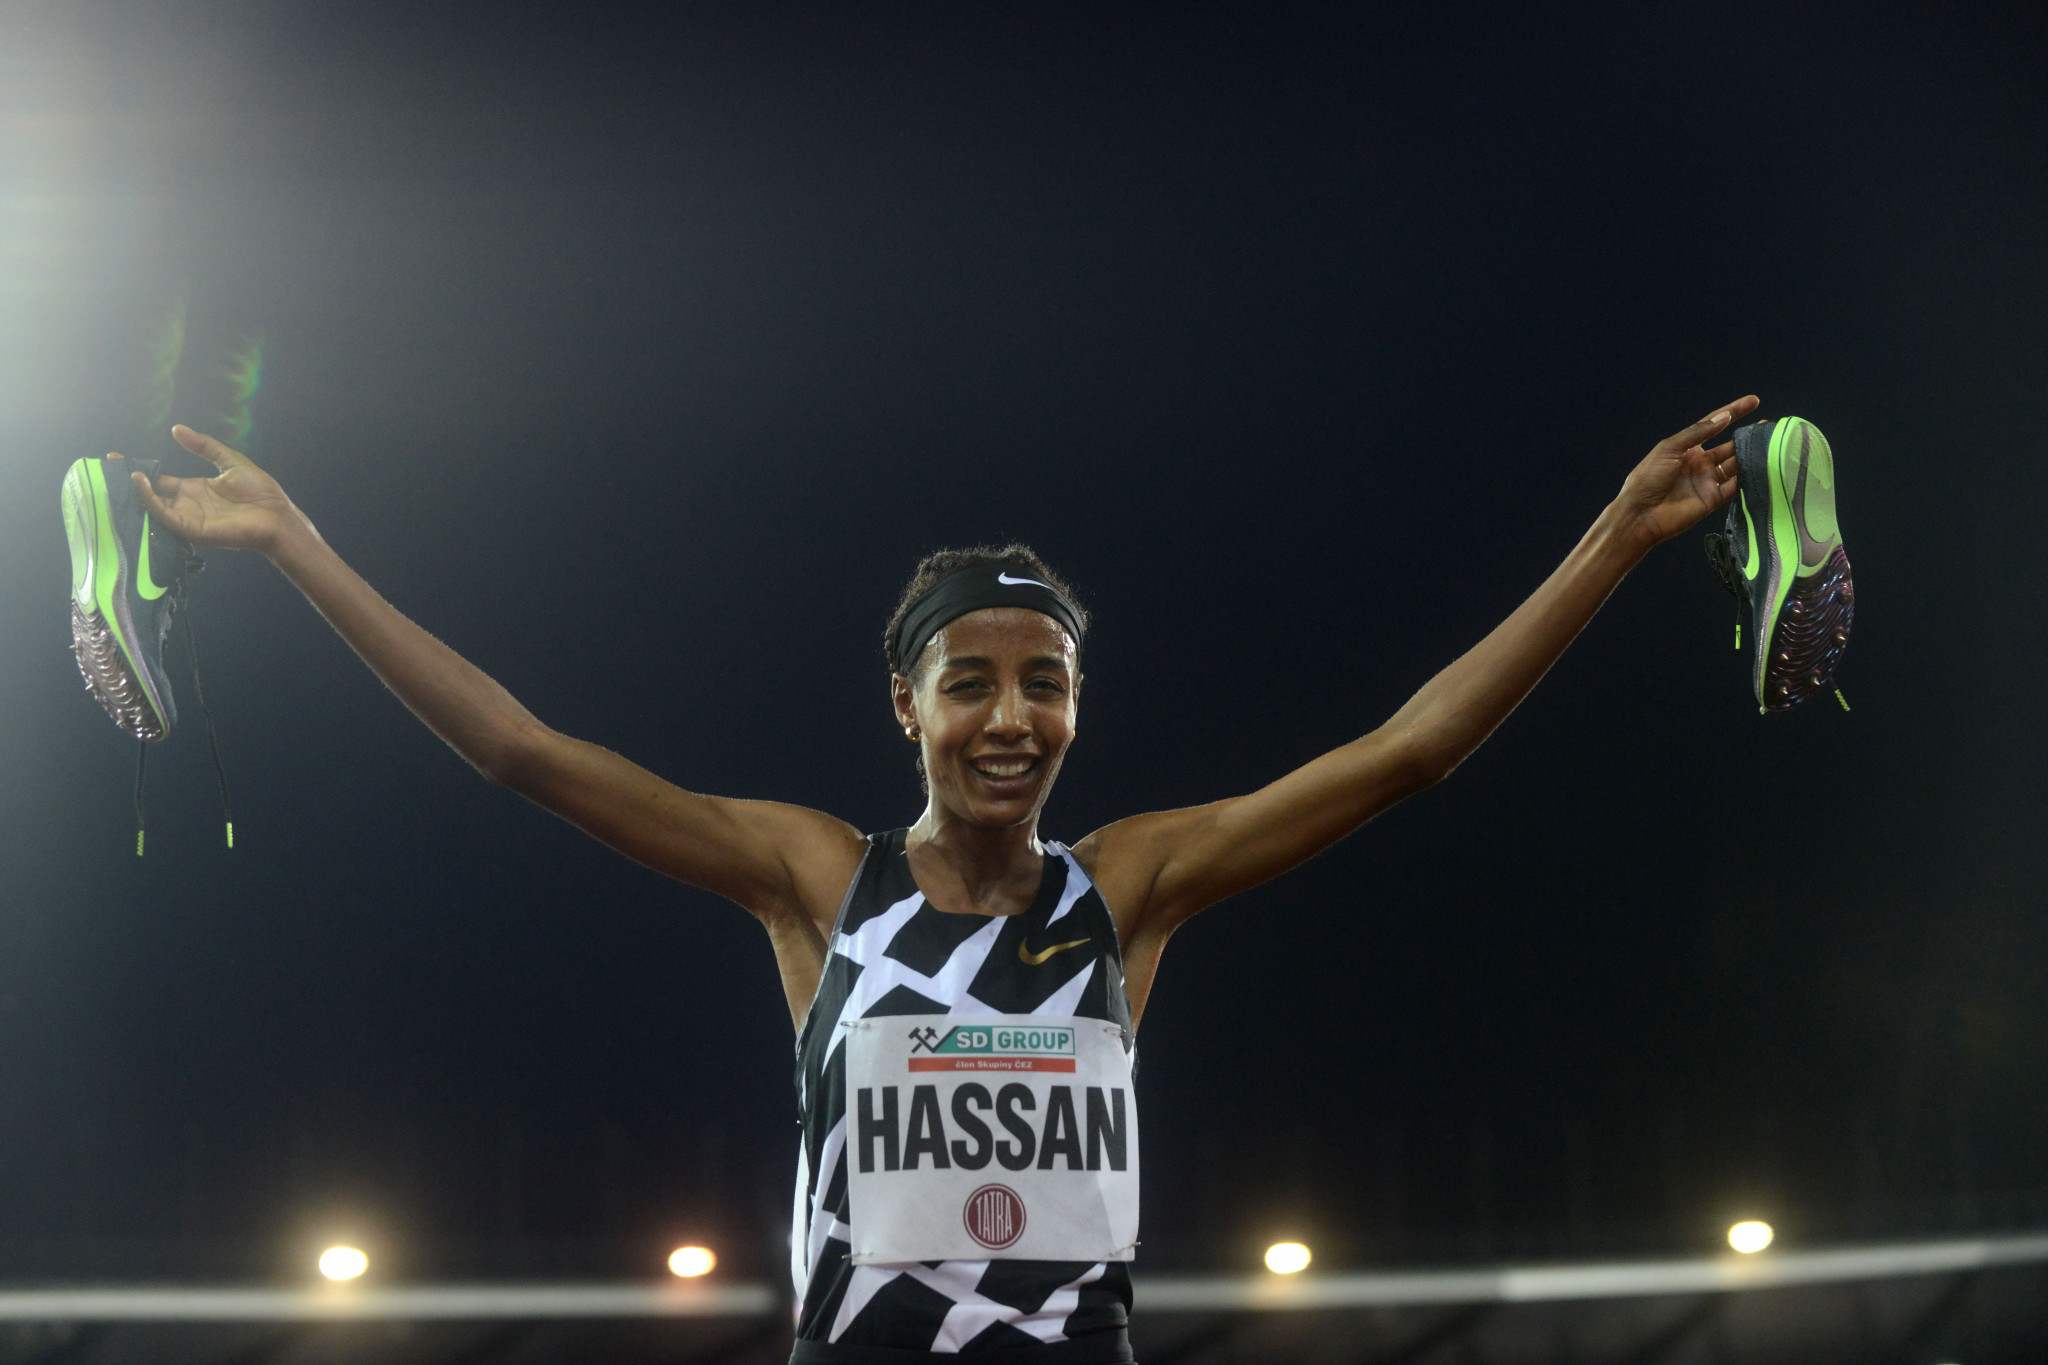 Sifan Hassan ran a season's best in the women's 5000m ©Getty Images